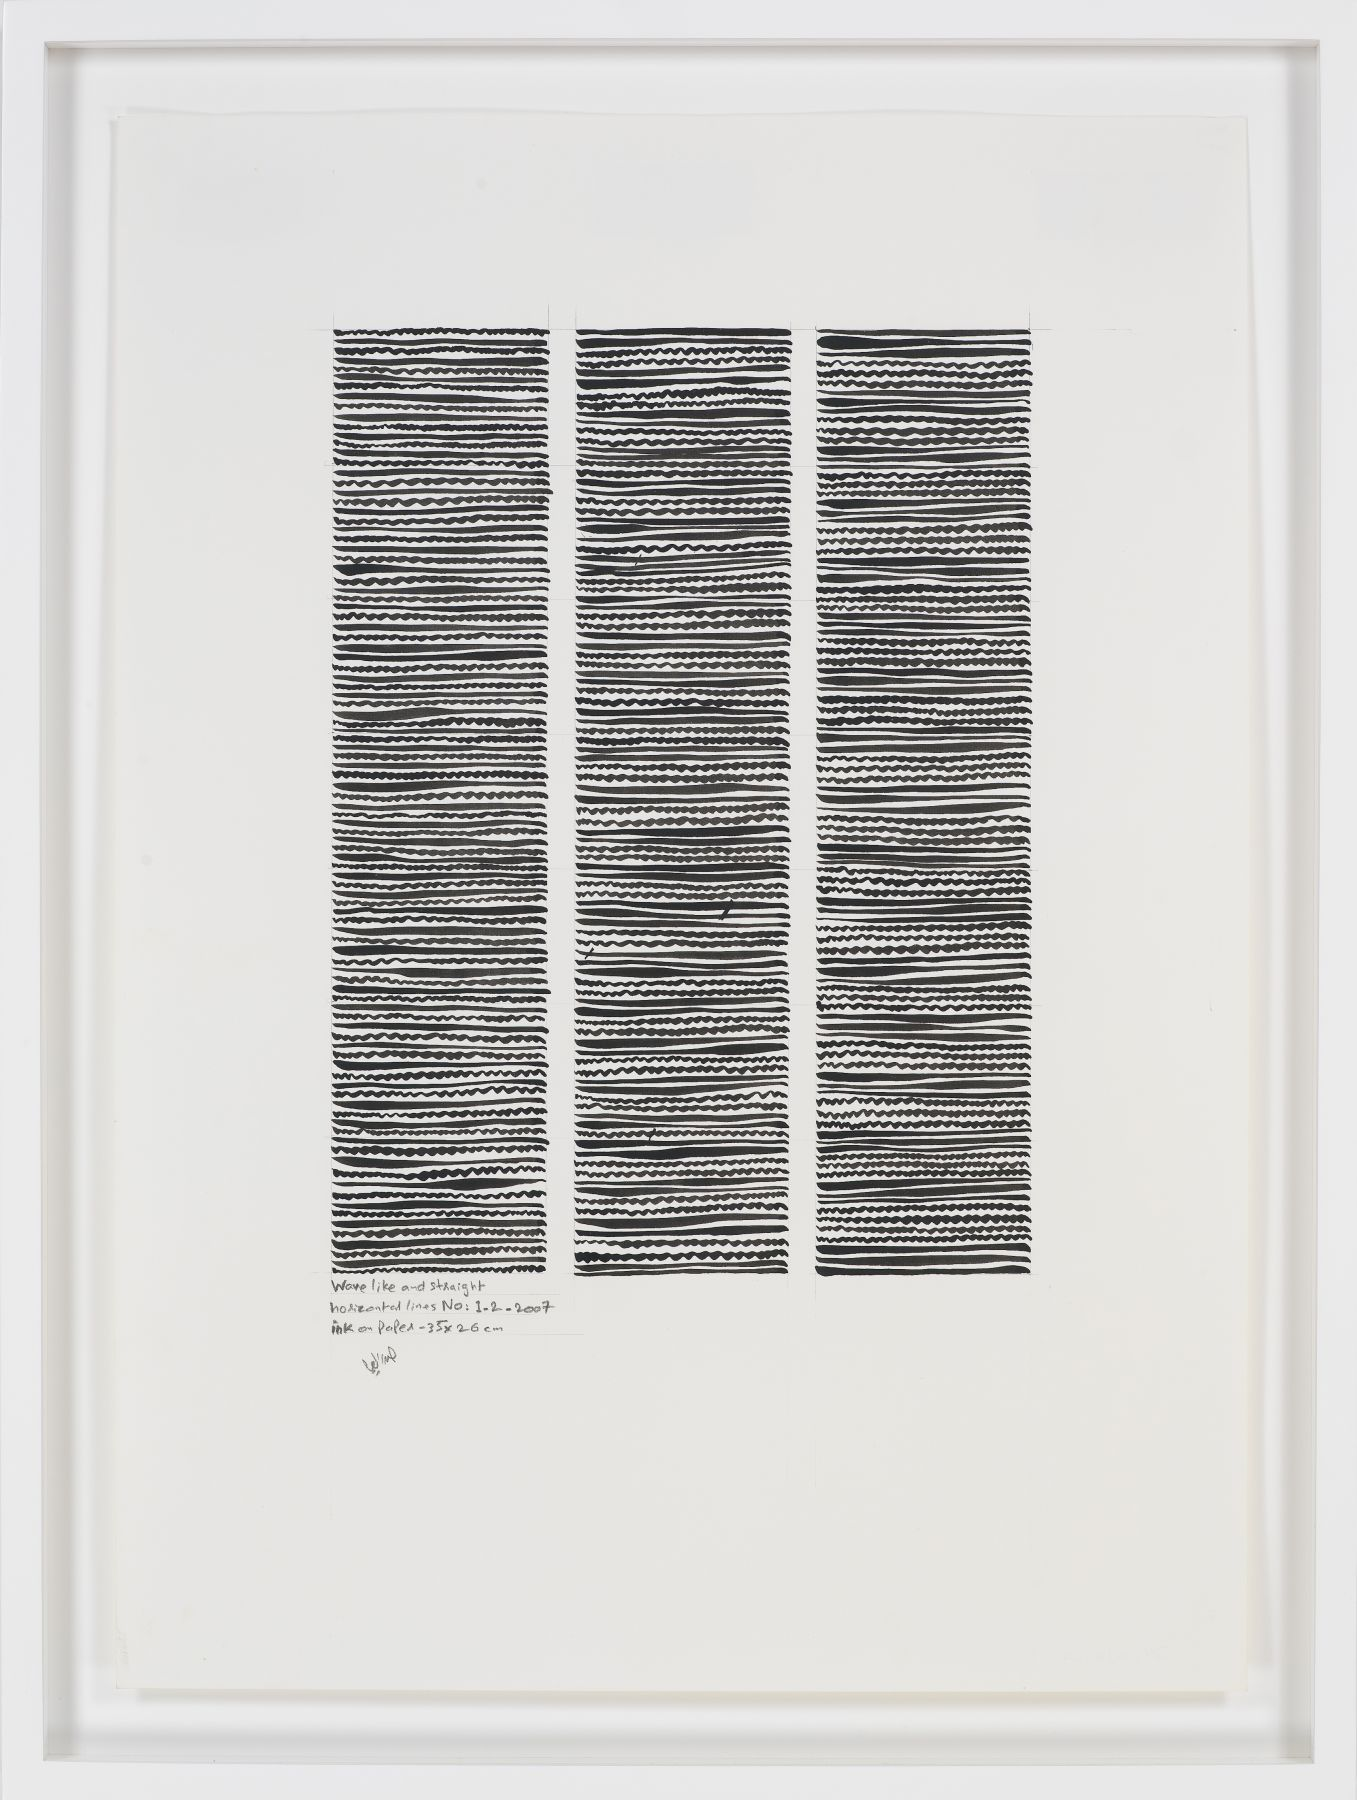 Wave-like and Straight Horizontal No. 1-2, 2007, Ink on paper